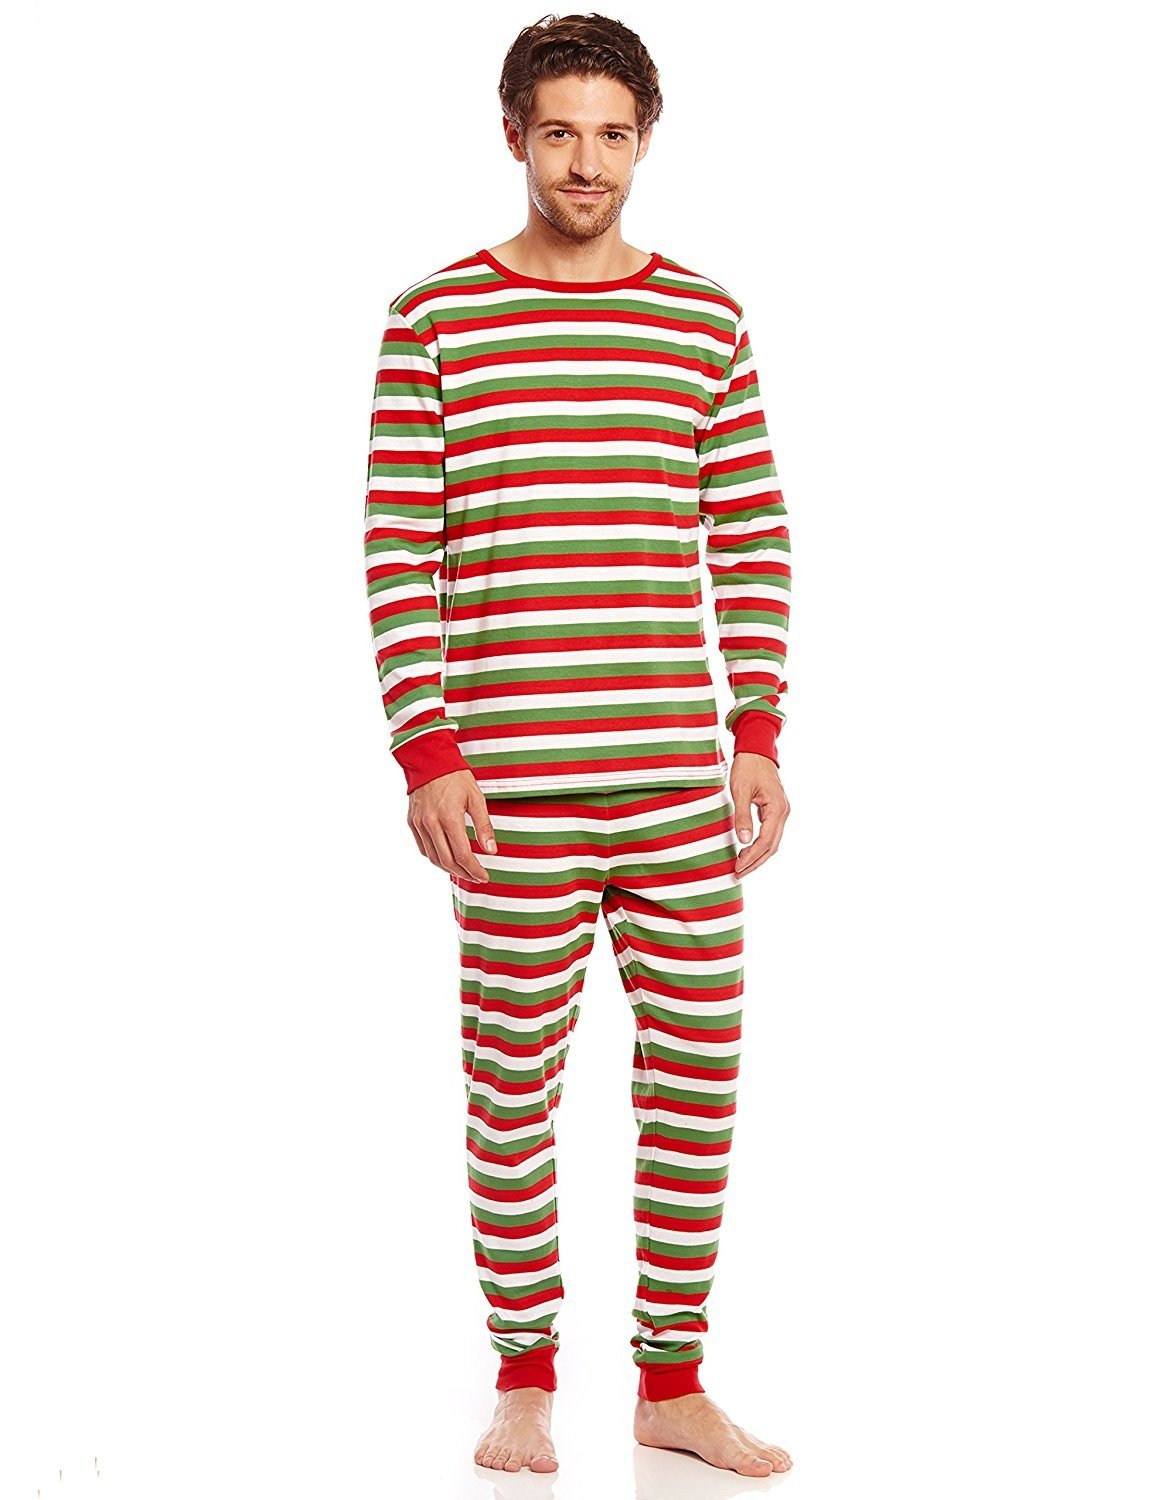 Leveret Mens Red White & Green Striped 2 Piece Pajama Set 100% Cotton X-Large